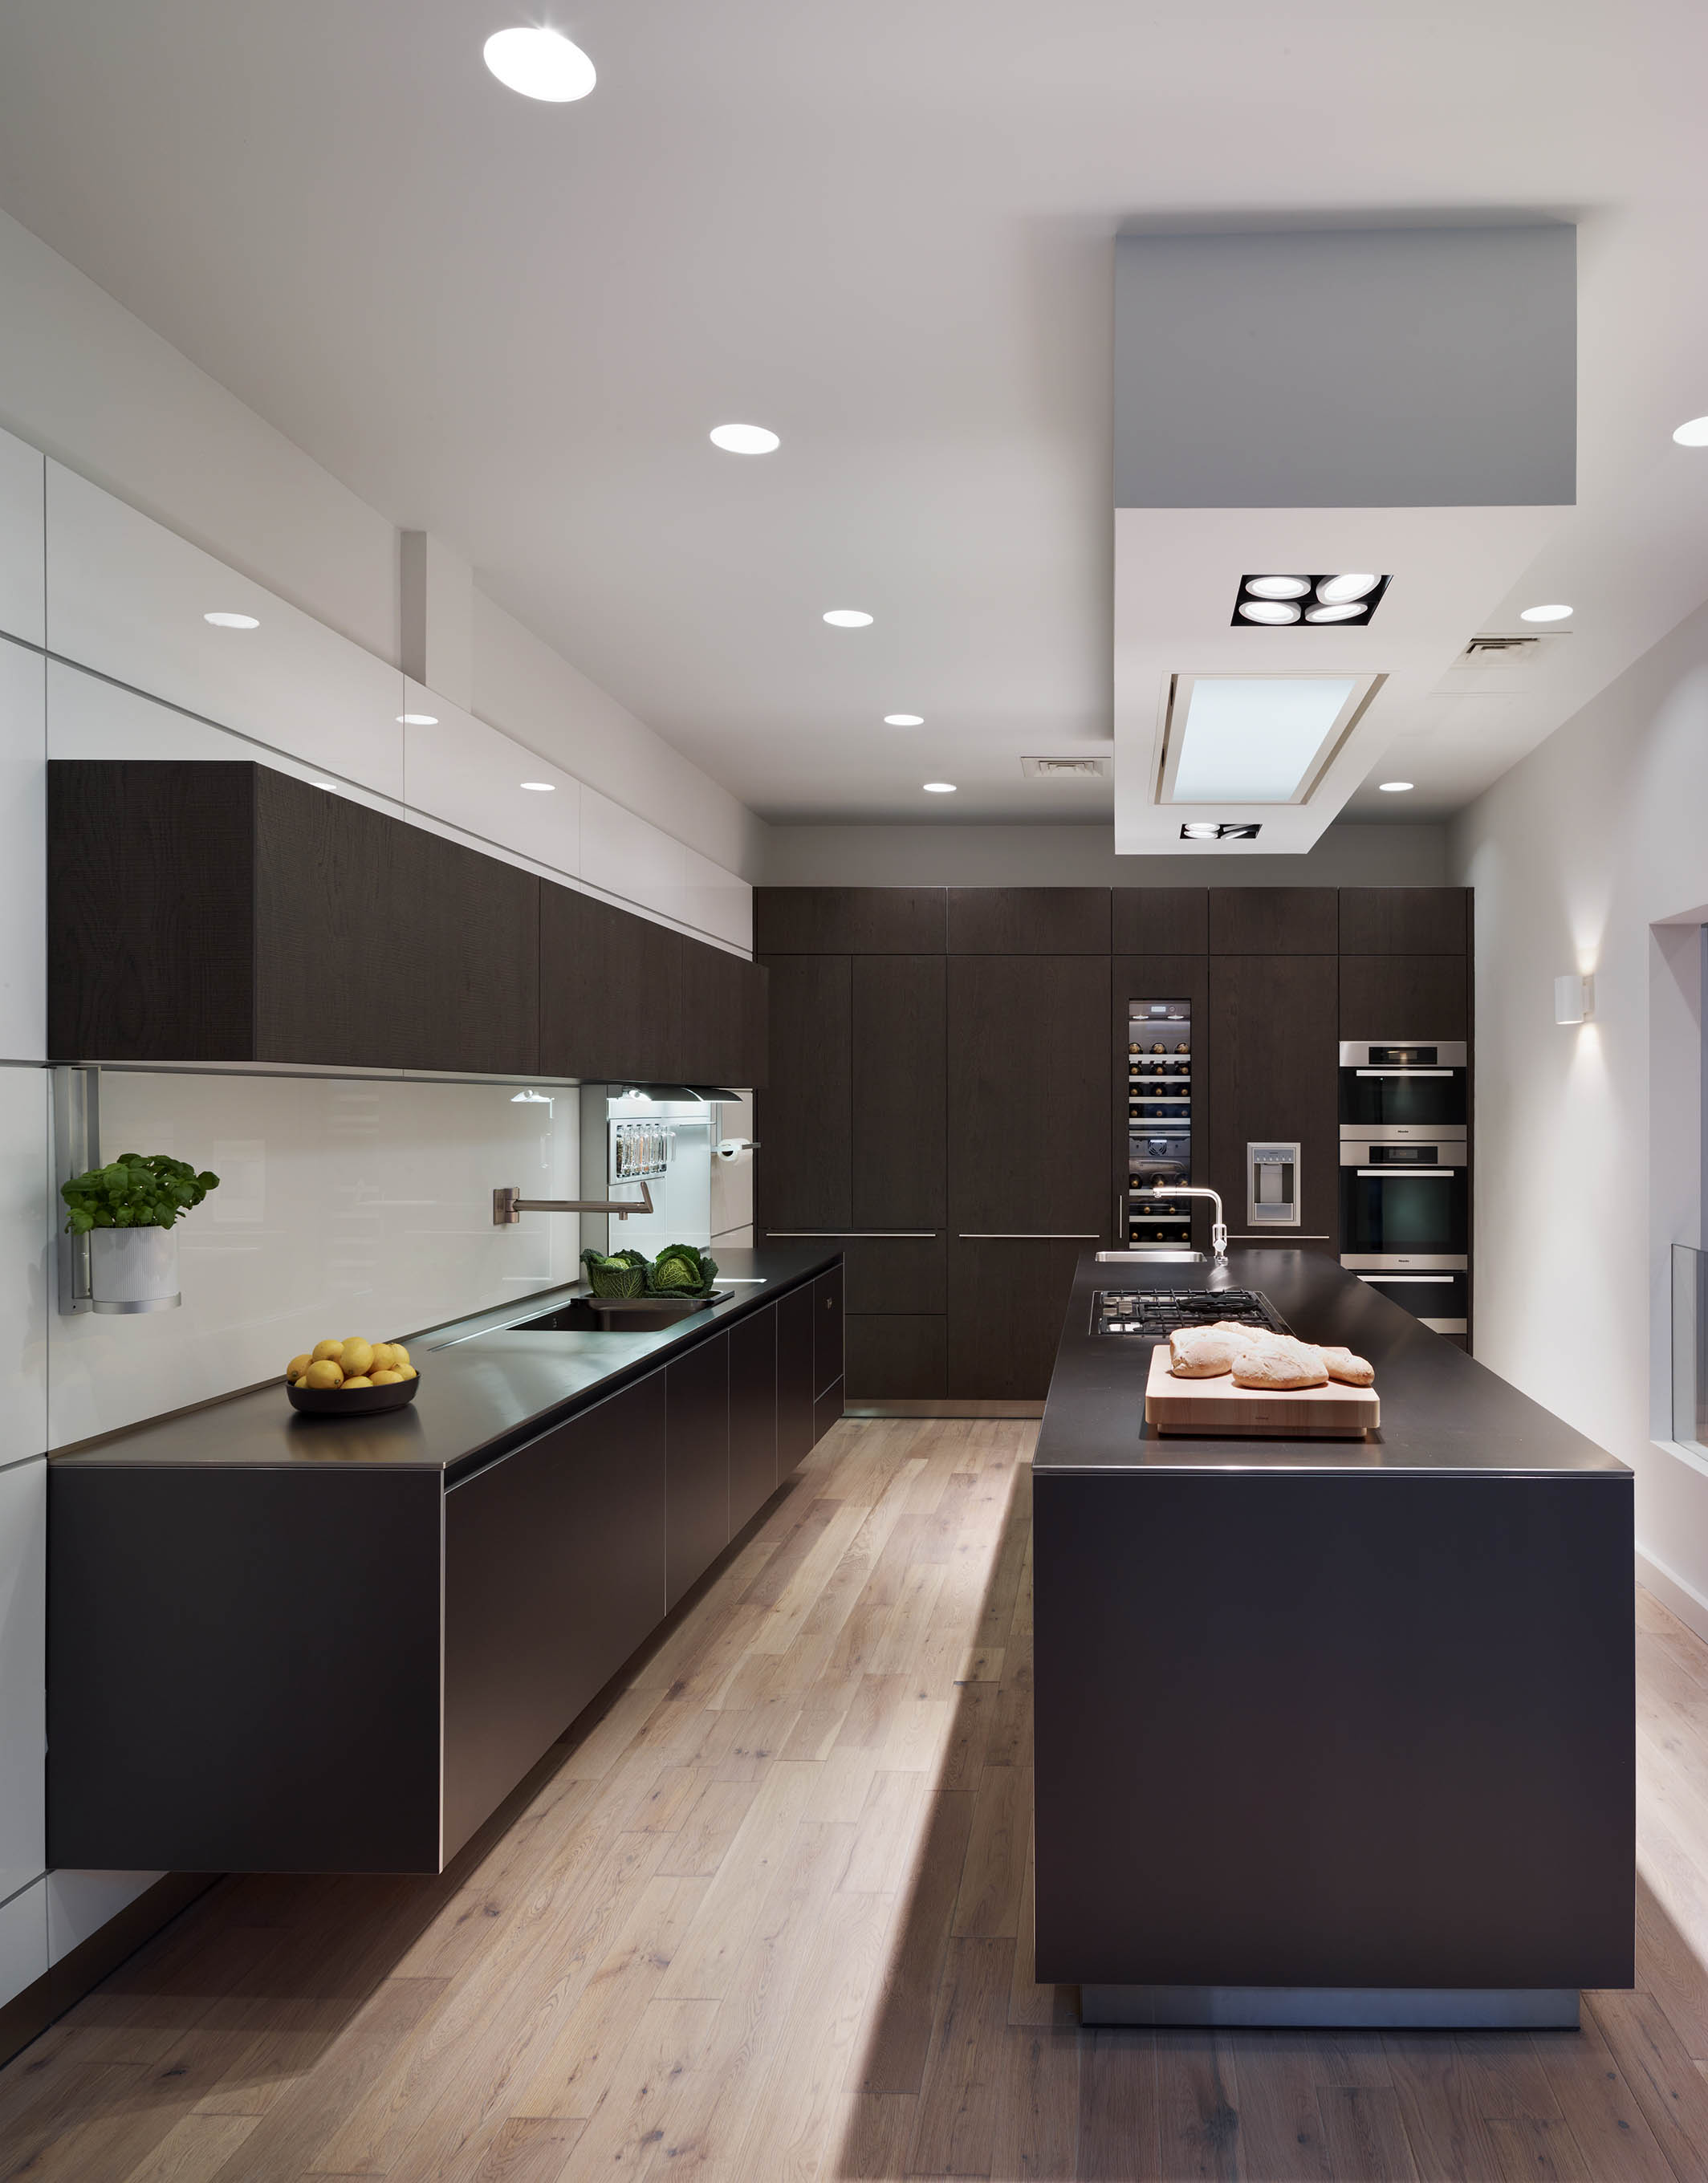 kitchen showrooms to go architectures bulthaup showroom in cheshire 厨房建筑在柴郡的牛角陈列室